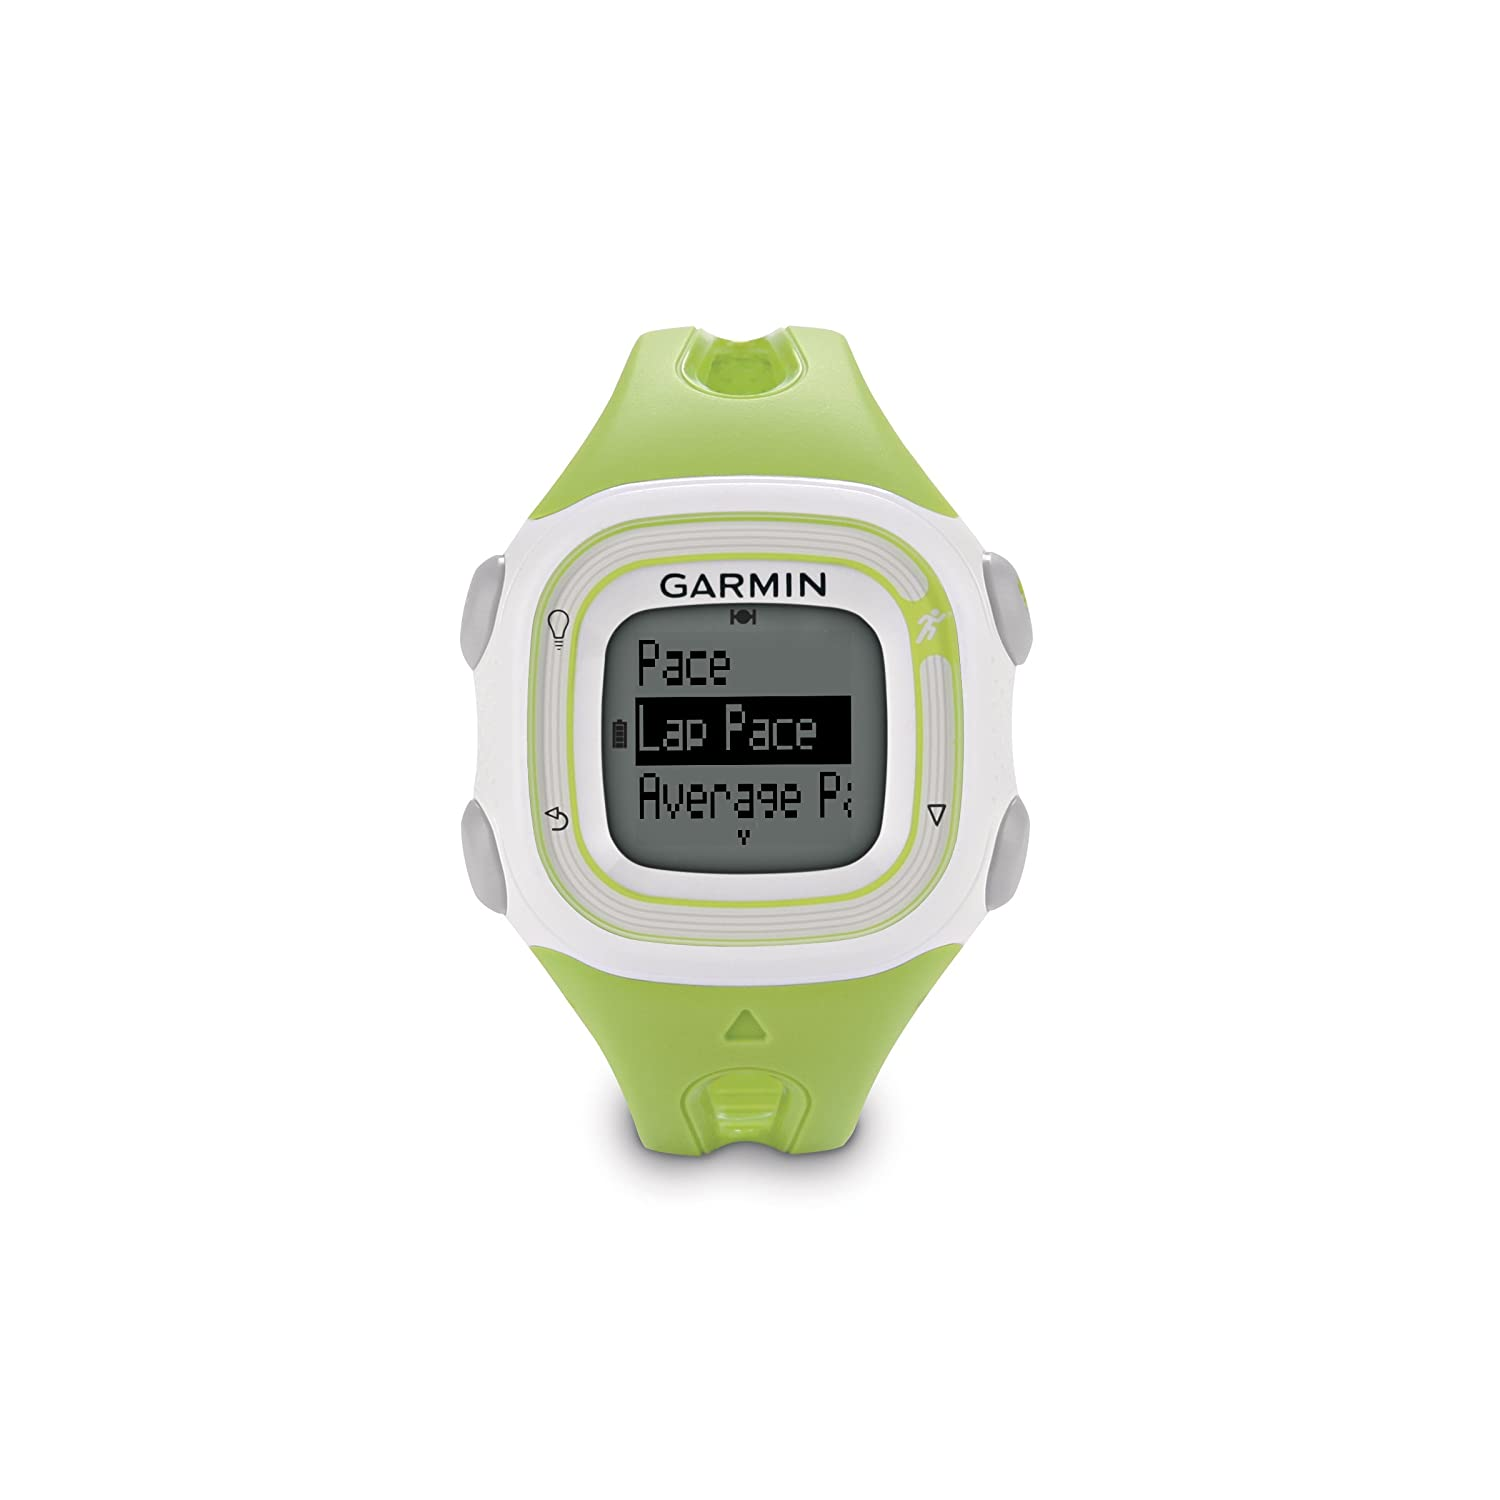 Garmin Forerunner 10 GPS Watch price in Pakistan, Garmin Nuvi in Pakistan at Symbios.PK